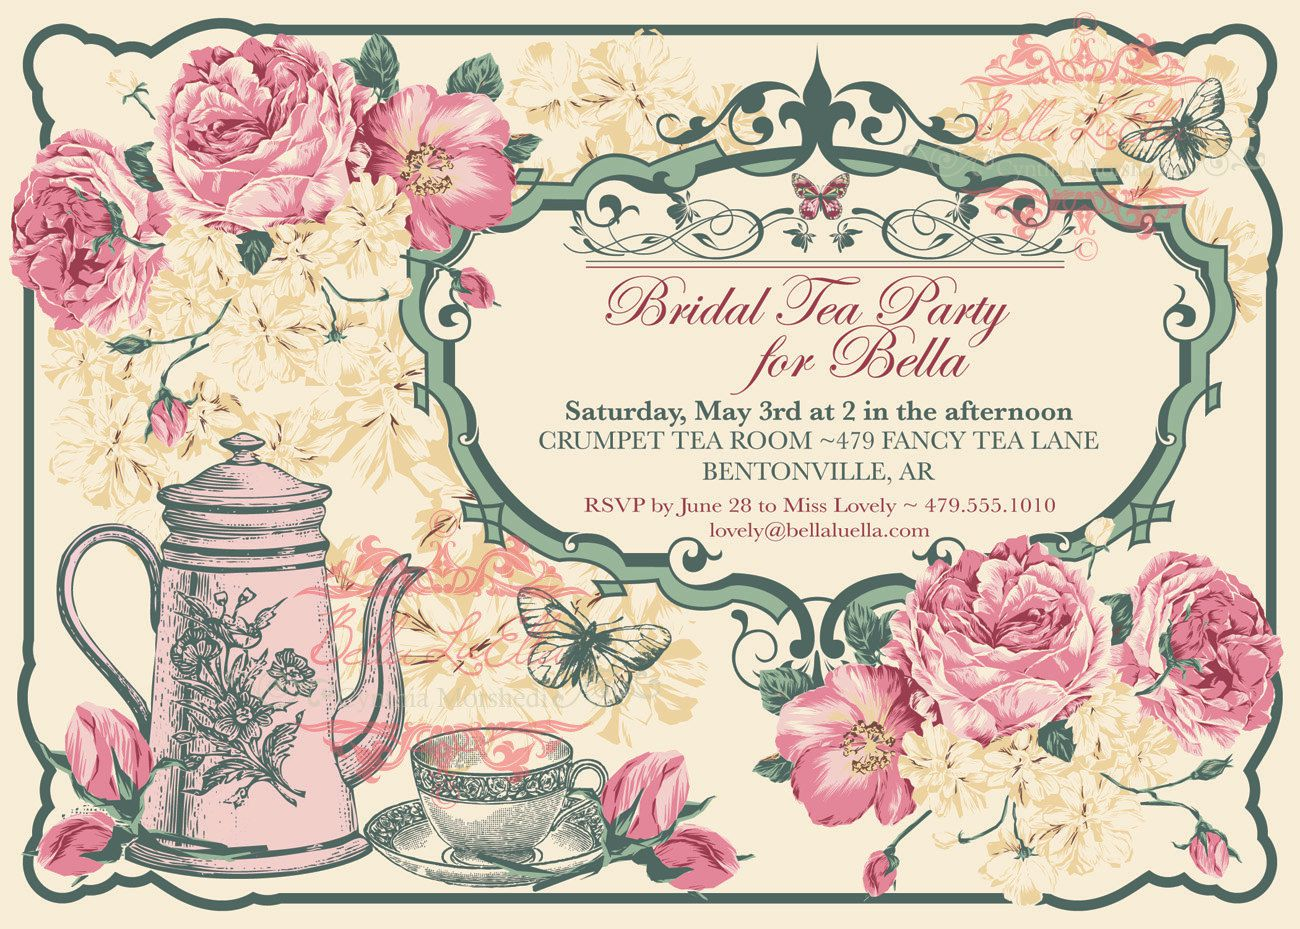 Tea Party Invitations Australia